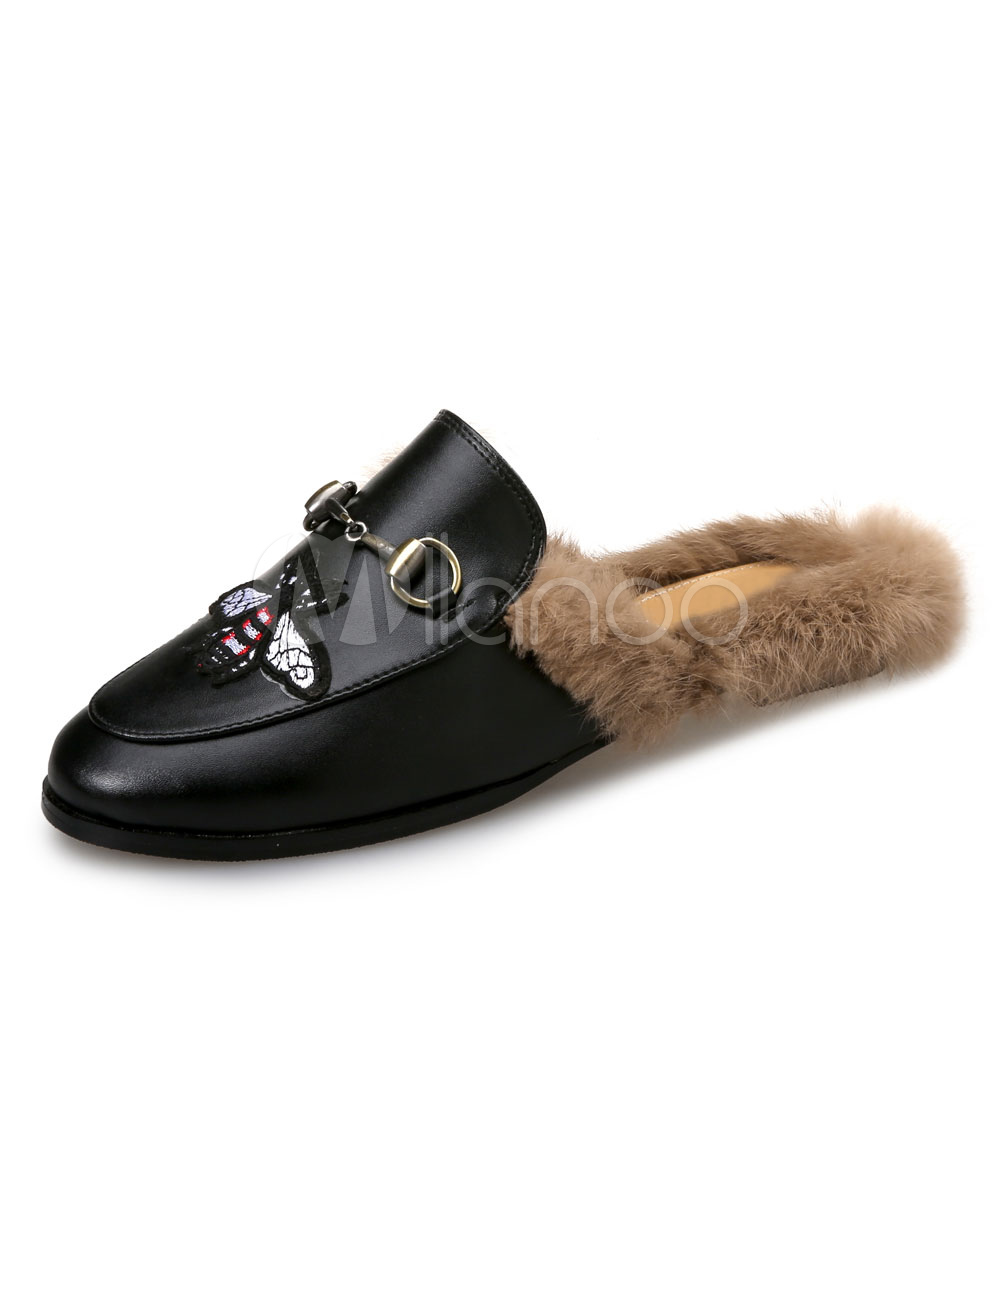 Buy Black Mule Loafers Round Toe Metal Detail Mules Fur Detail Backless Loafer Shoes For Women for $39.99 in Milanoo store